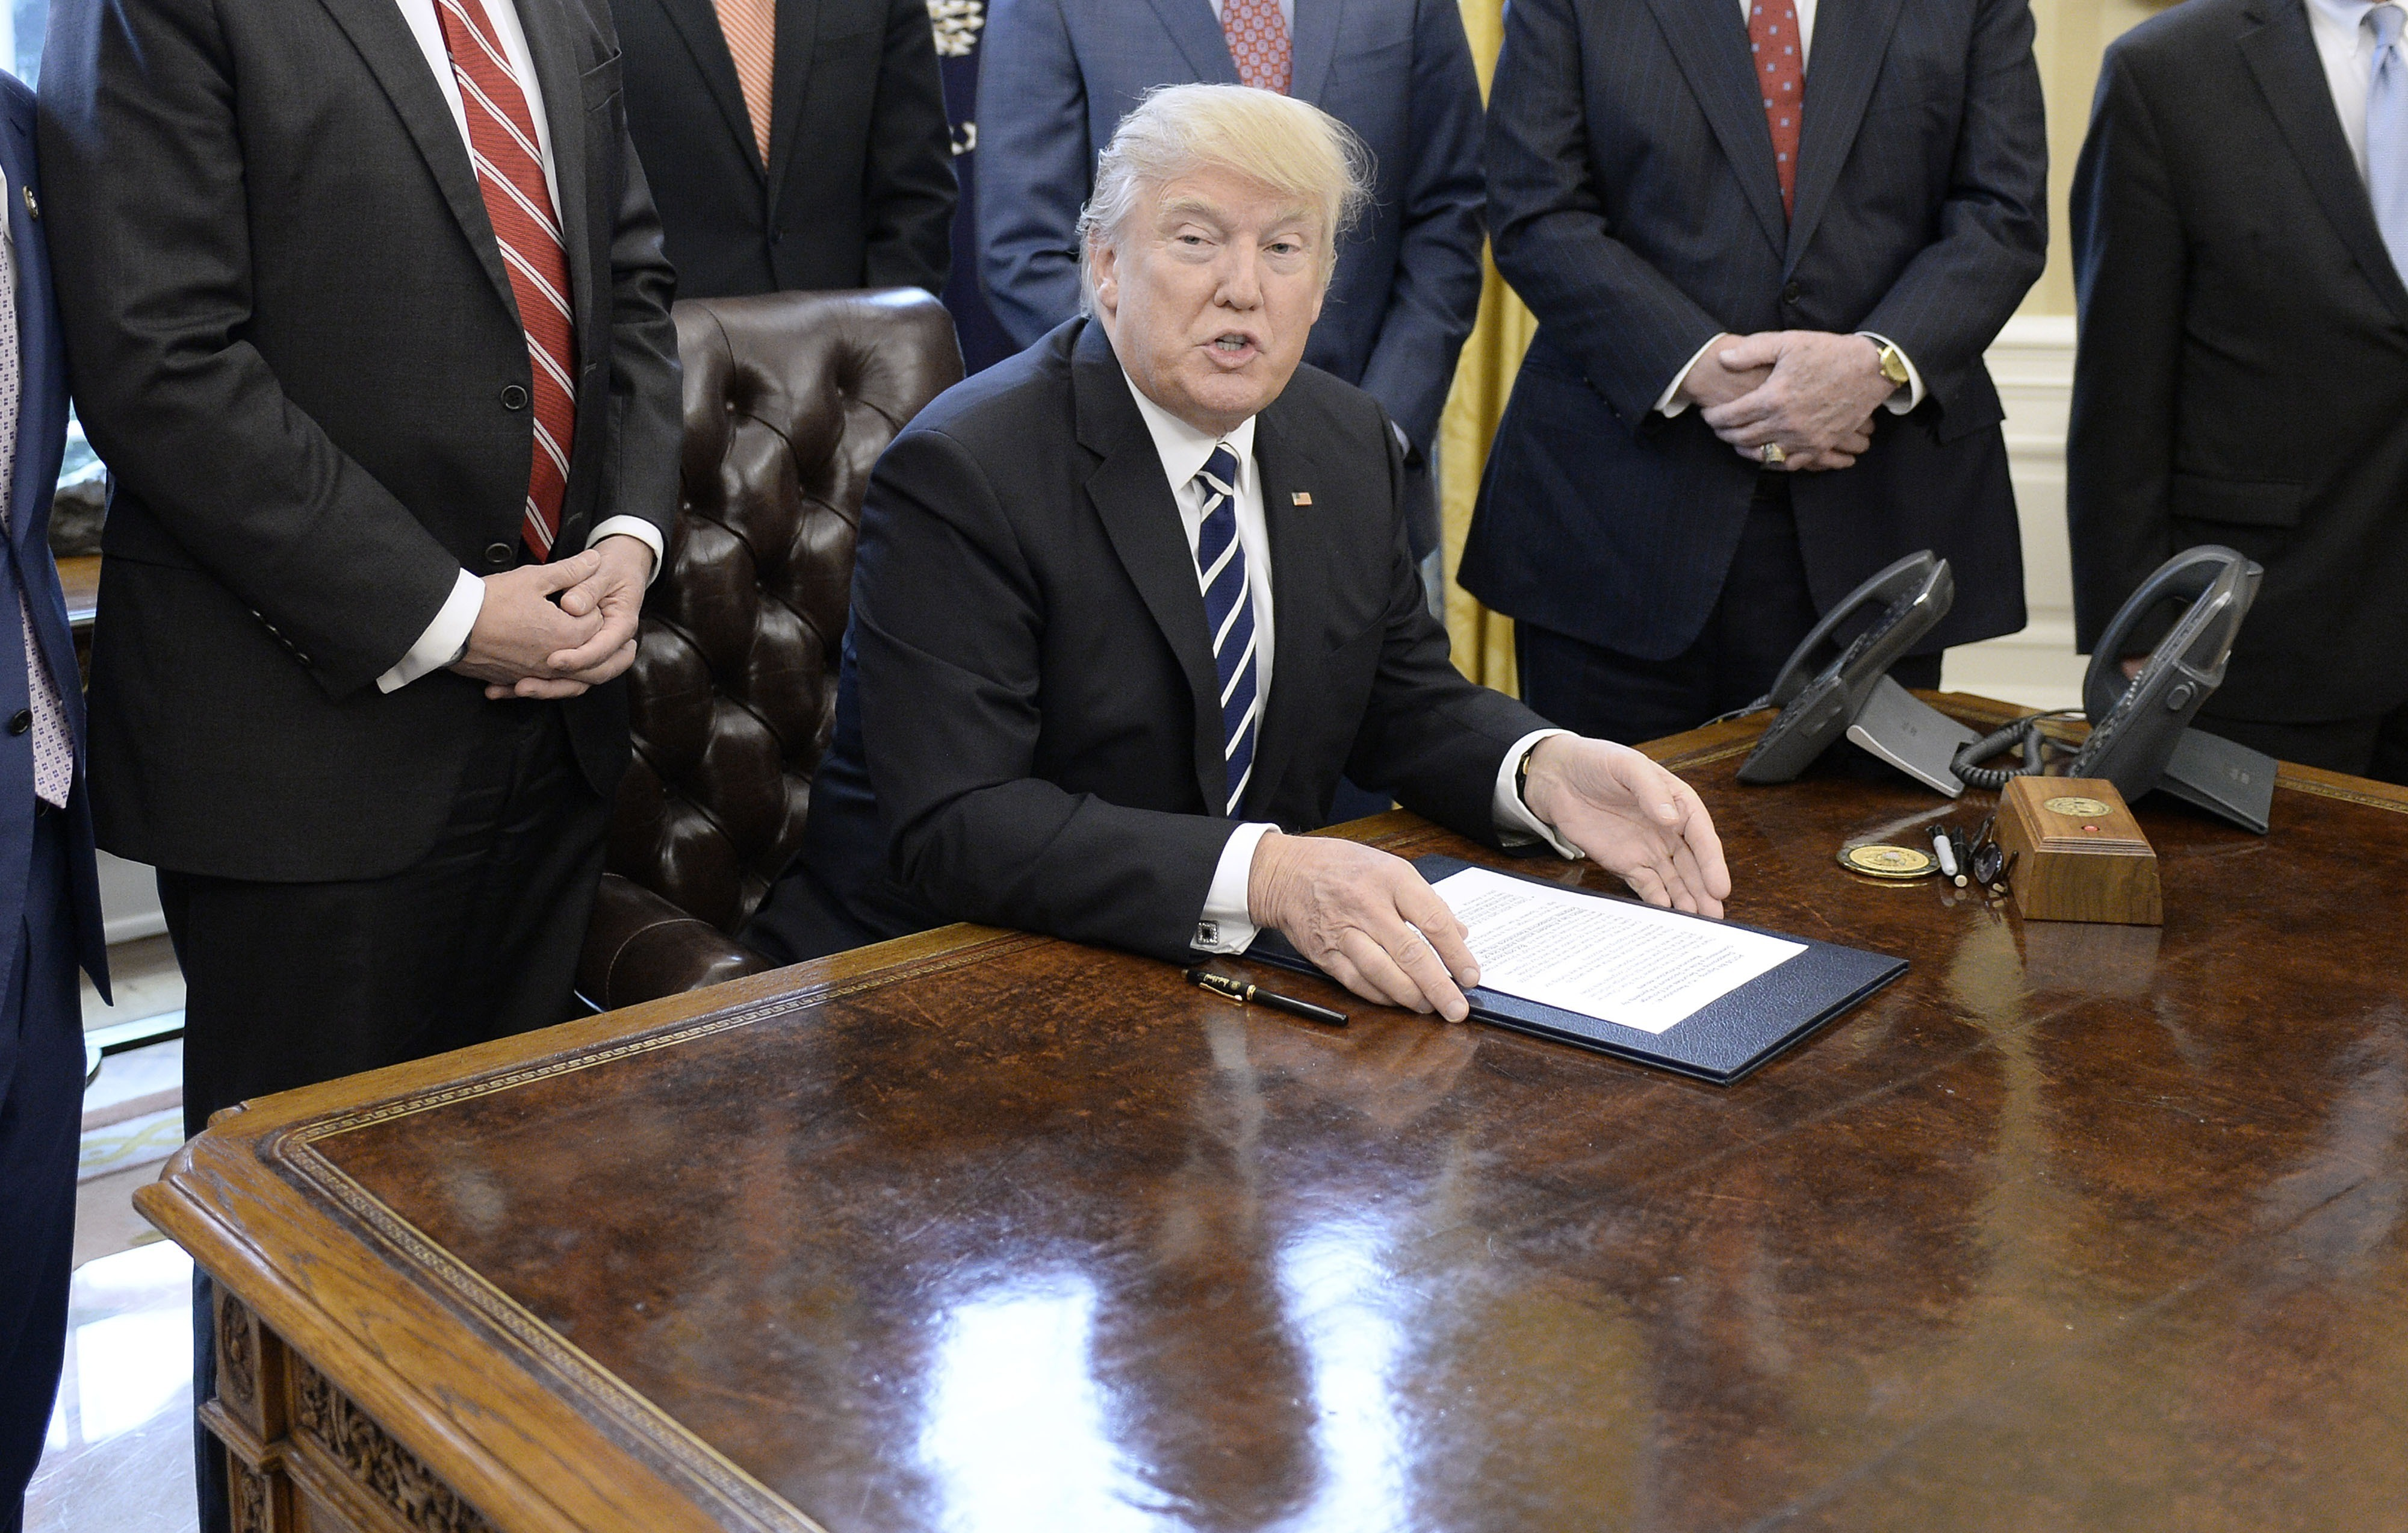 President Trump recently indicated that he was considering executive action to address his own false claims of widespread voter fraud.